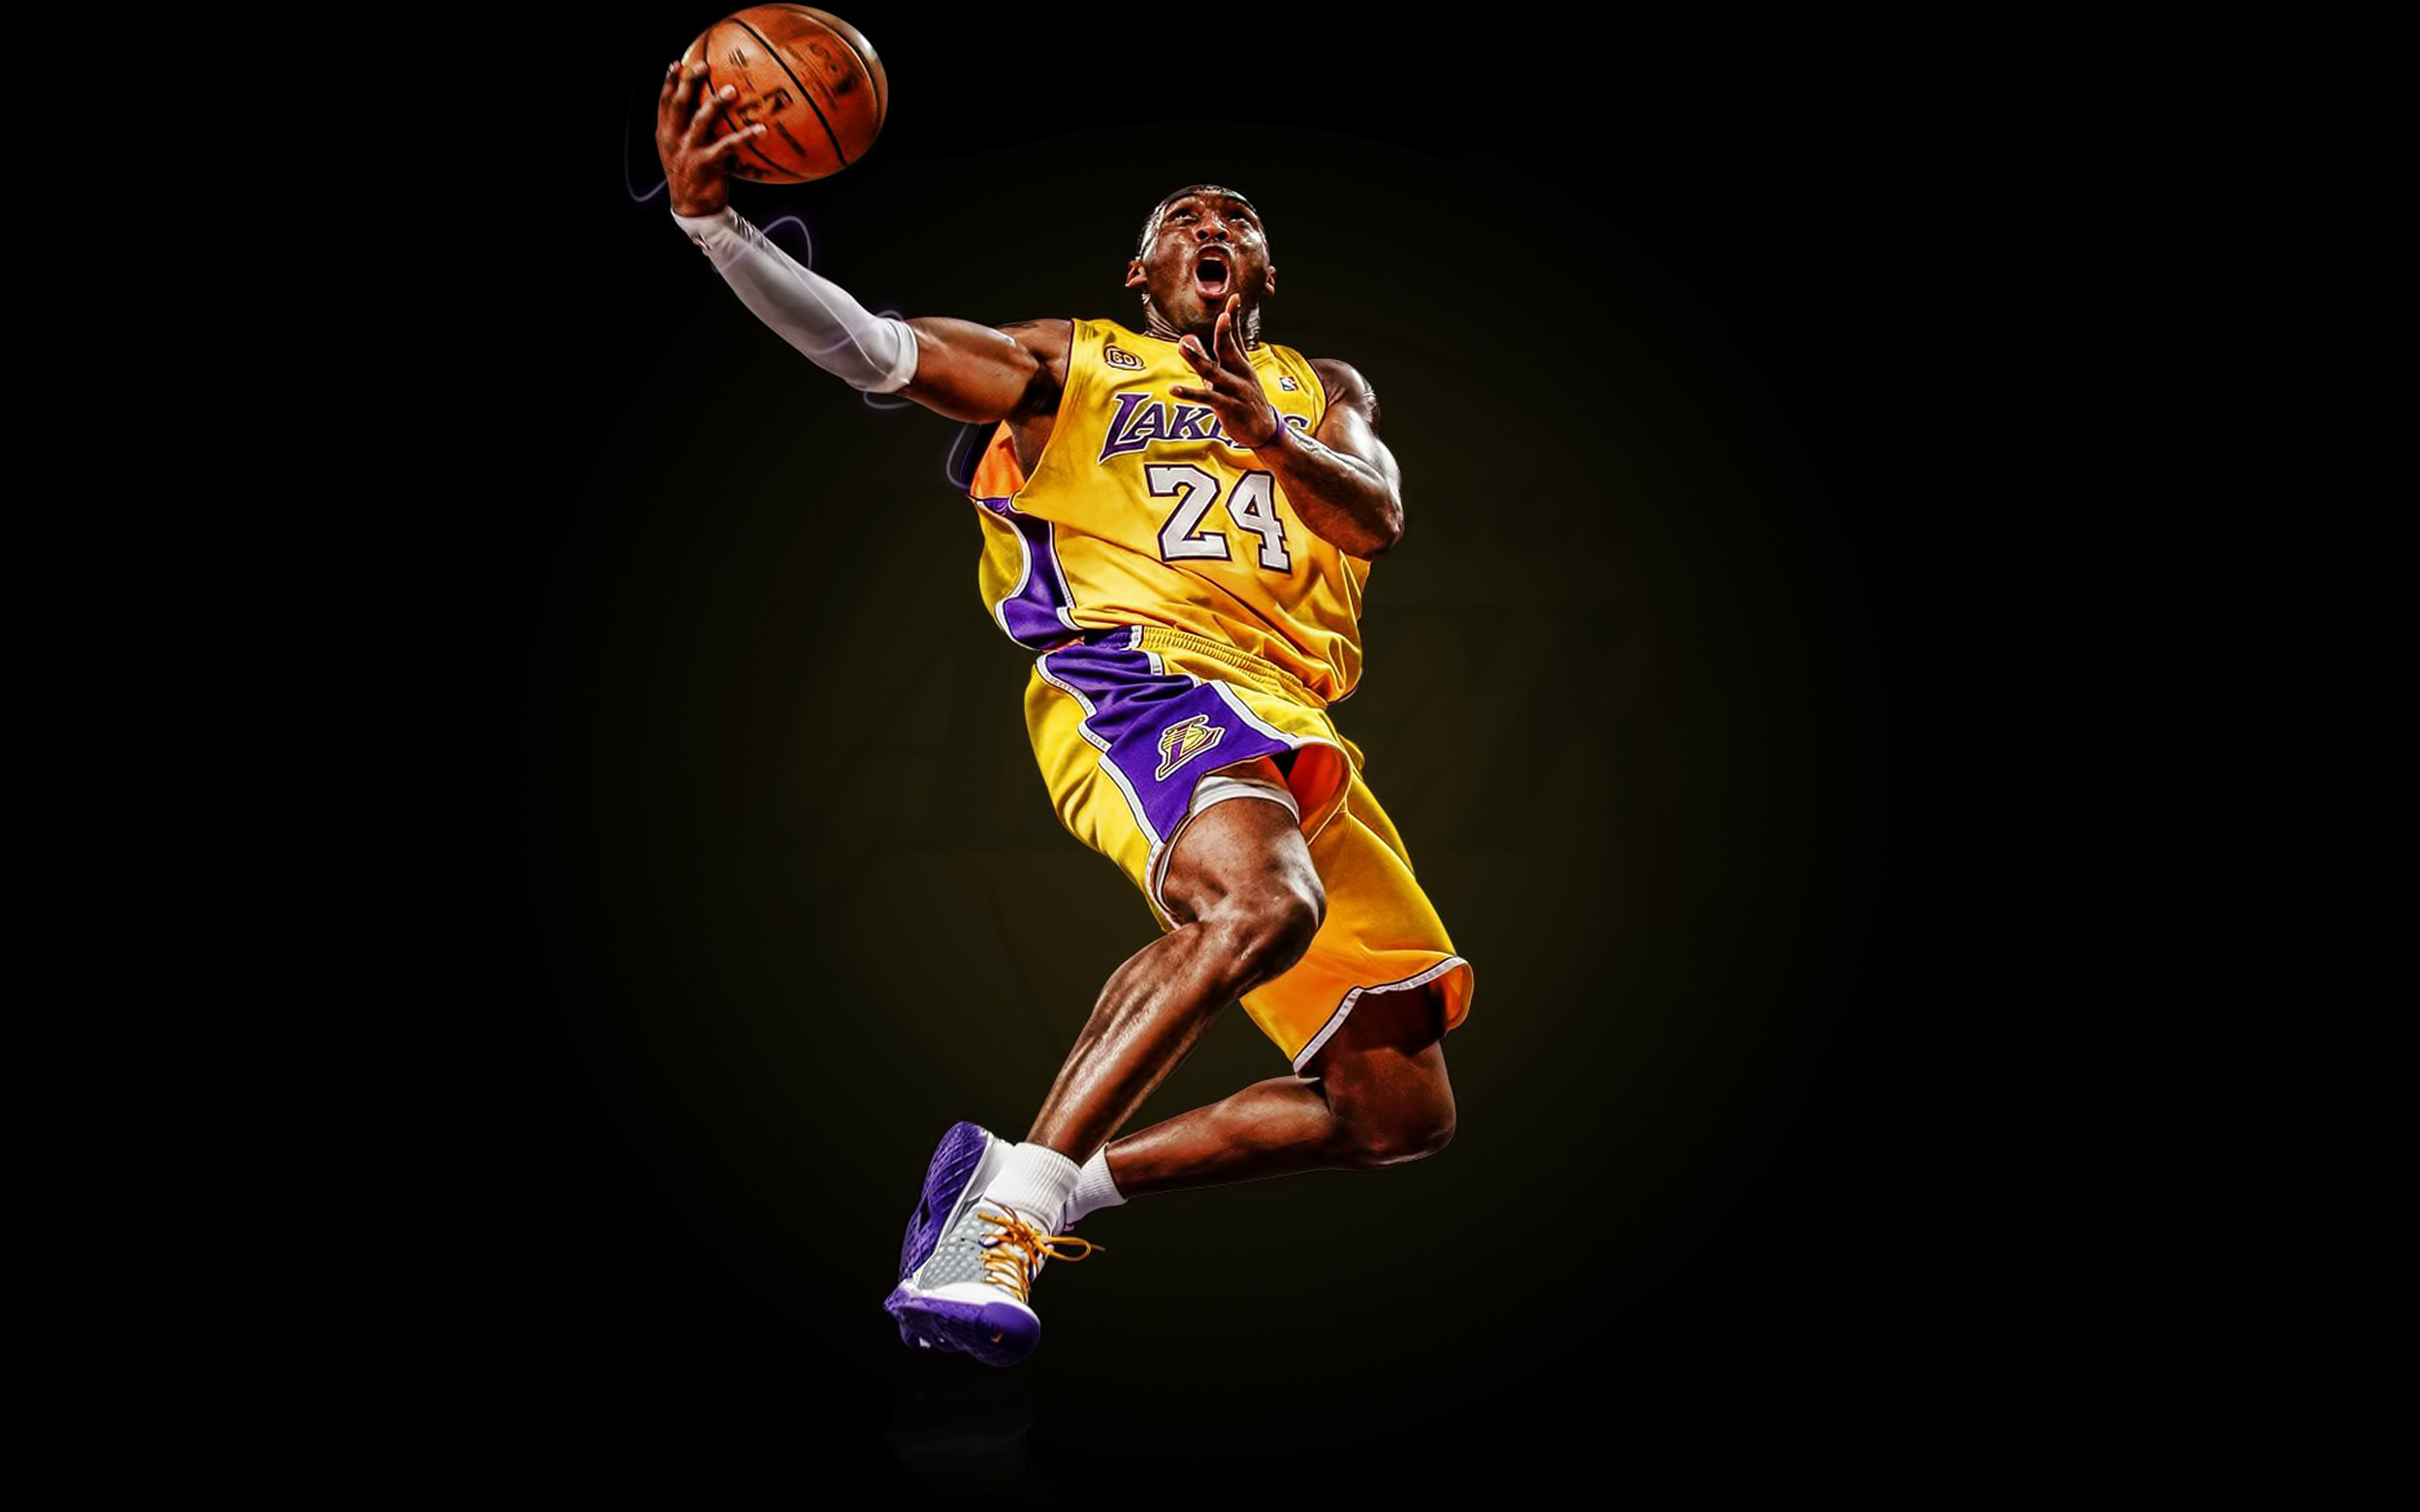 Kobe bryant photos basketball player wide